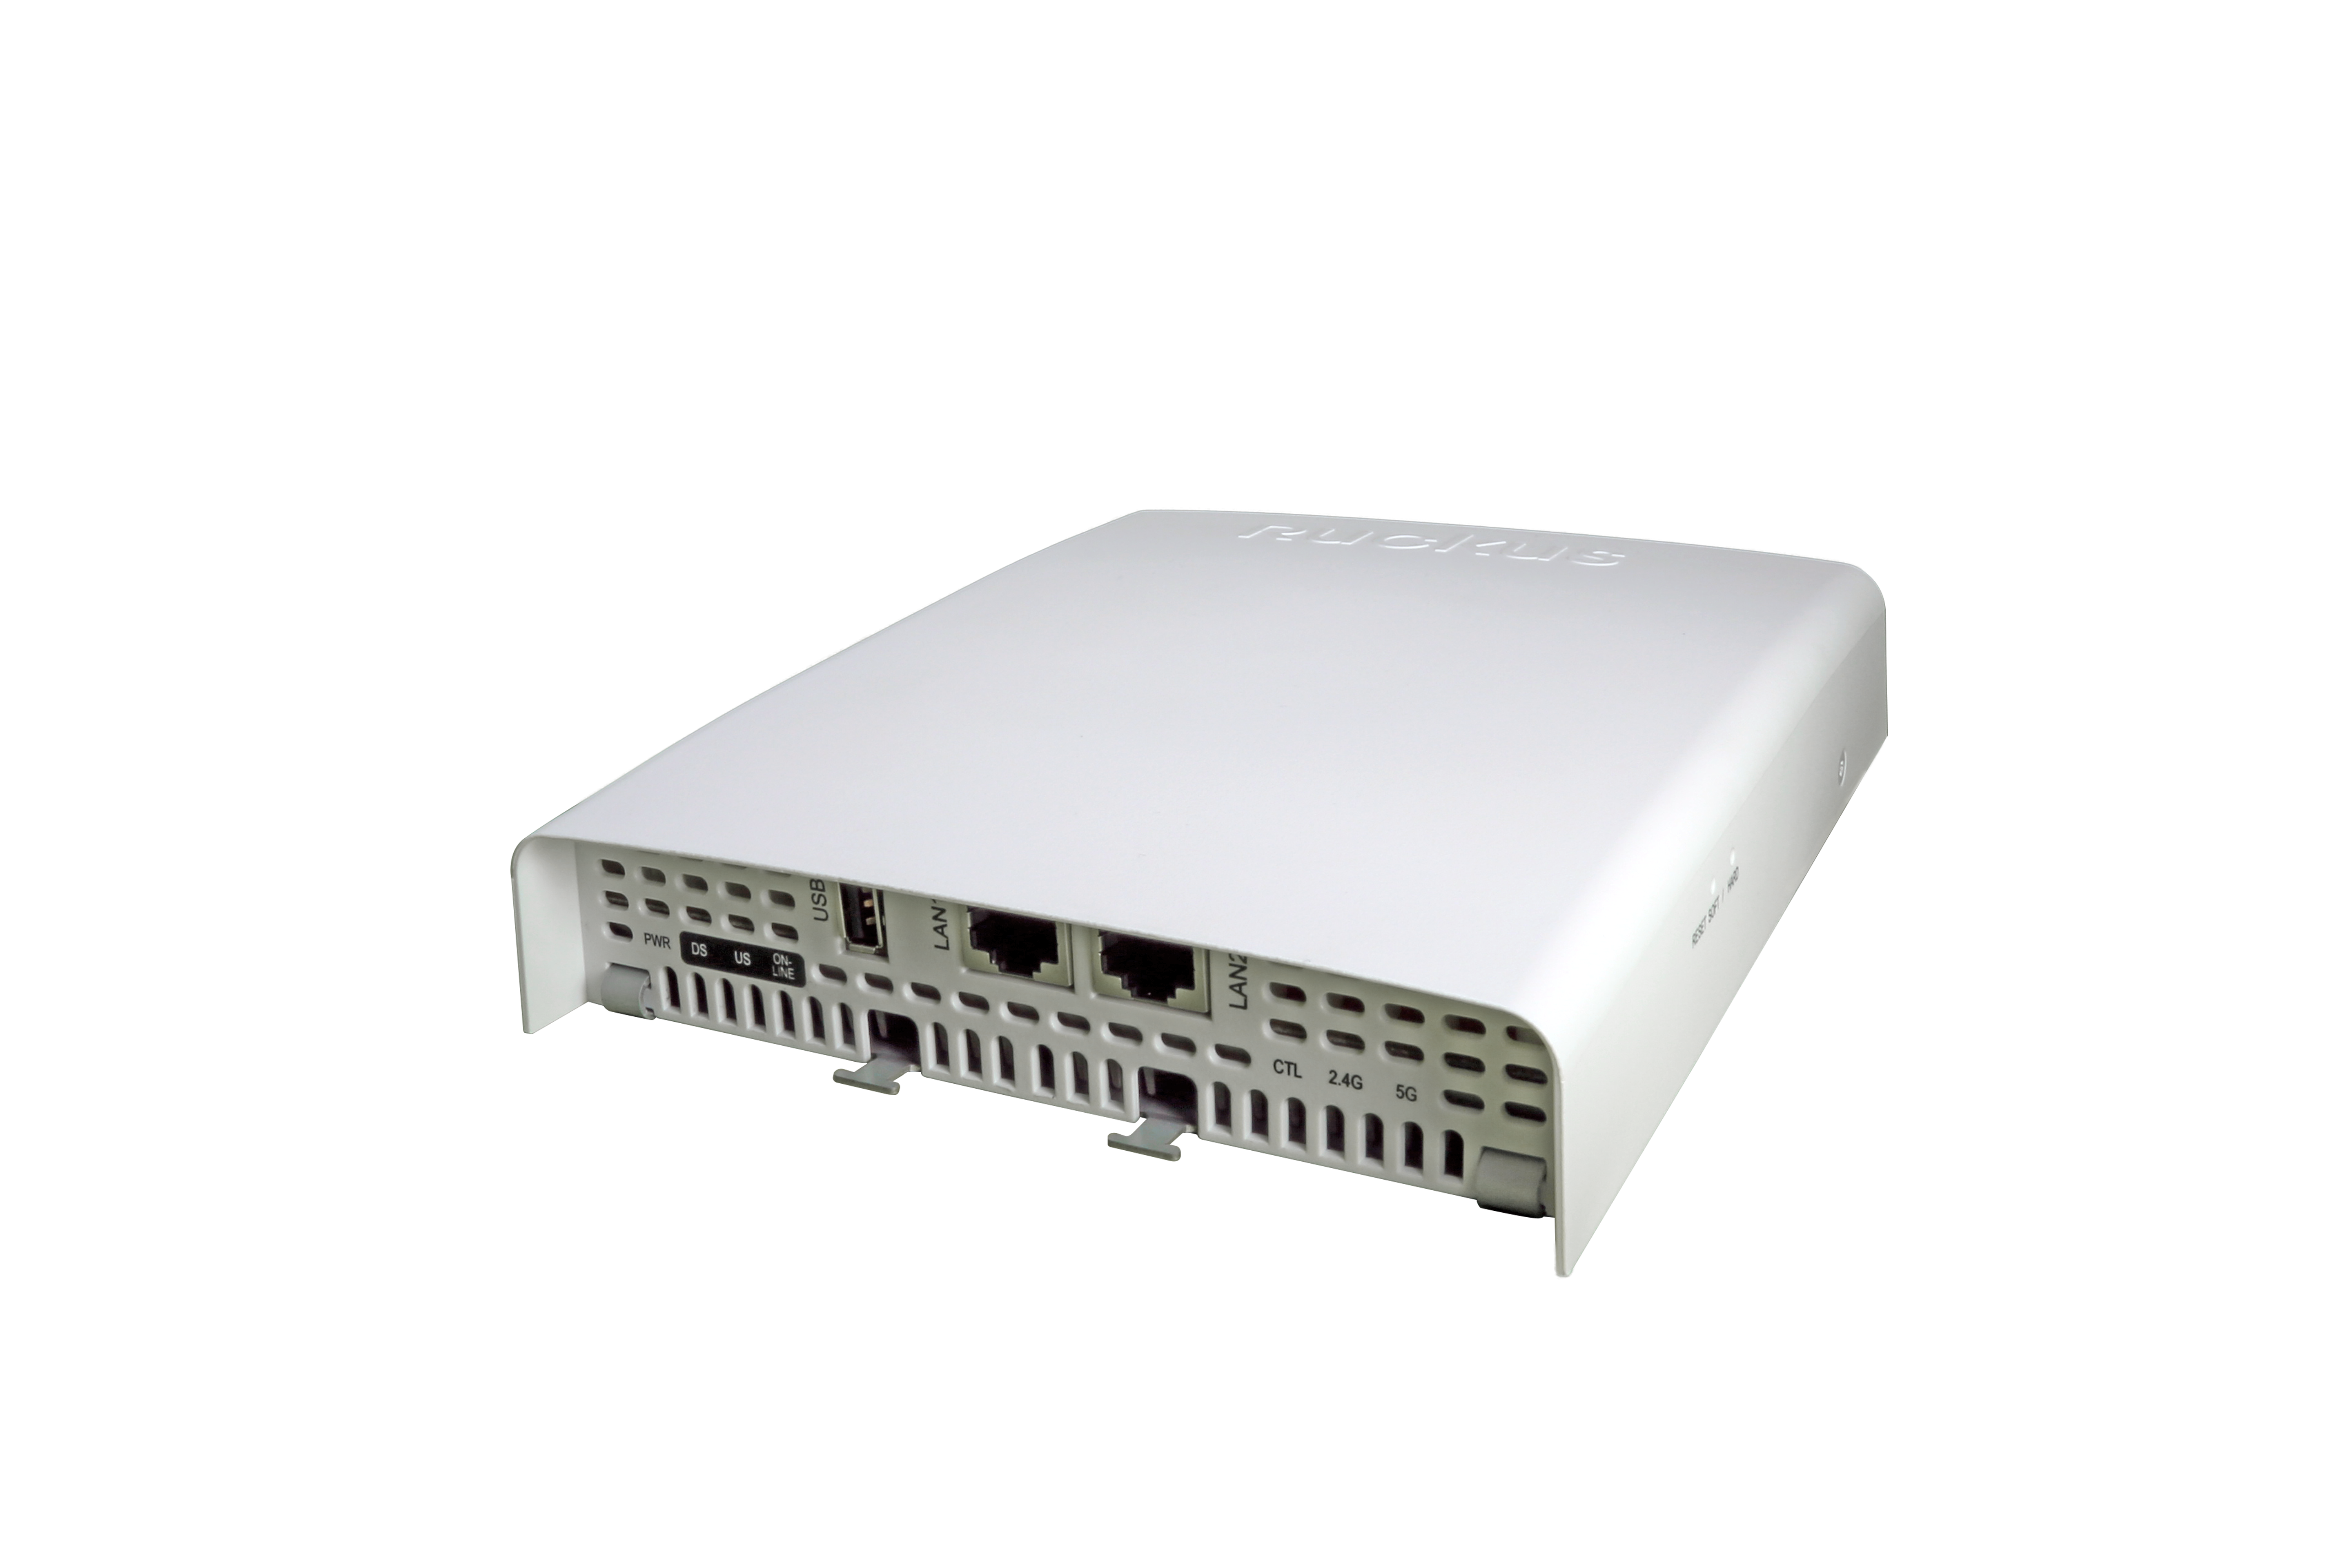 Access Point 106 0 SNMP Reference Guide | Technical